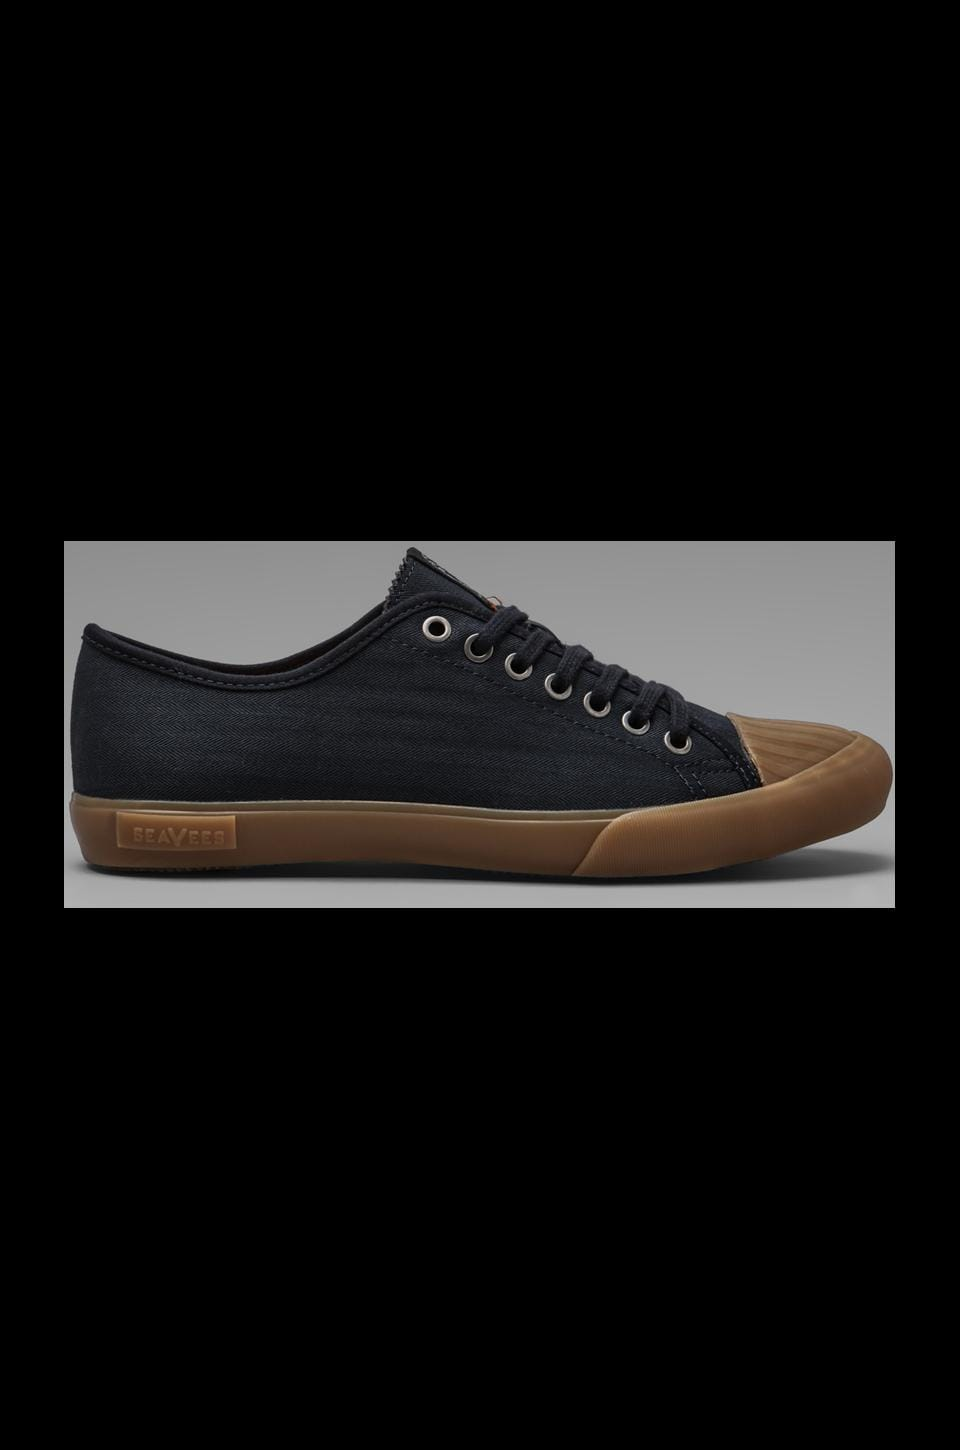 SeaVees x Todd Snyder Army Issue Low Top in Navy Herringbone